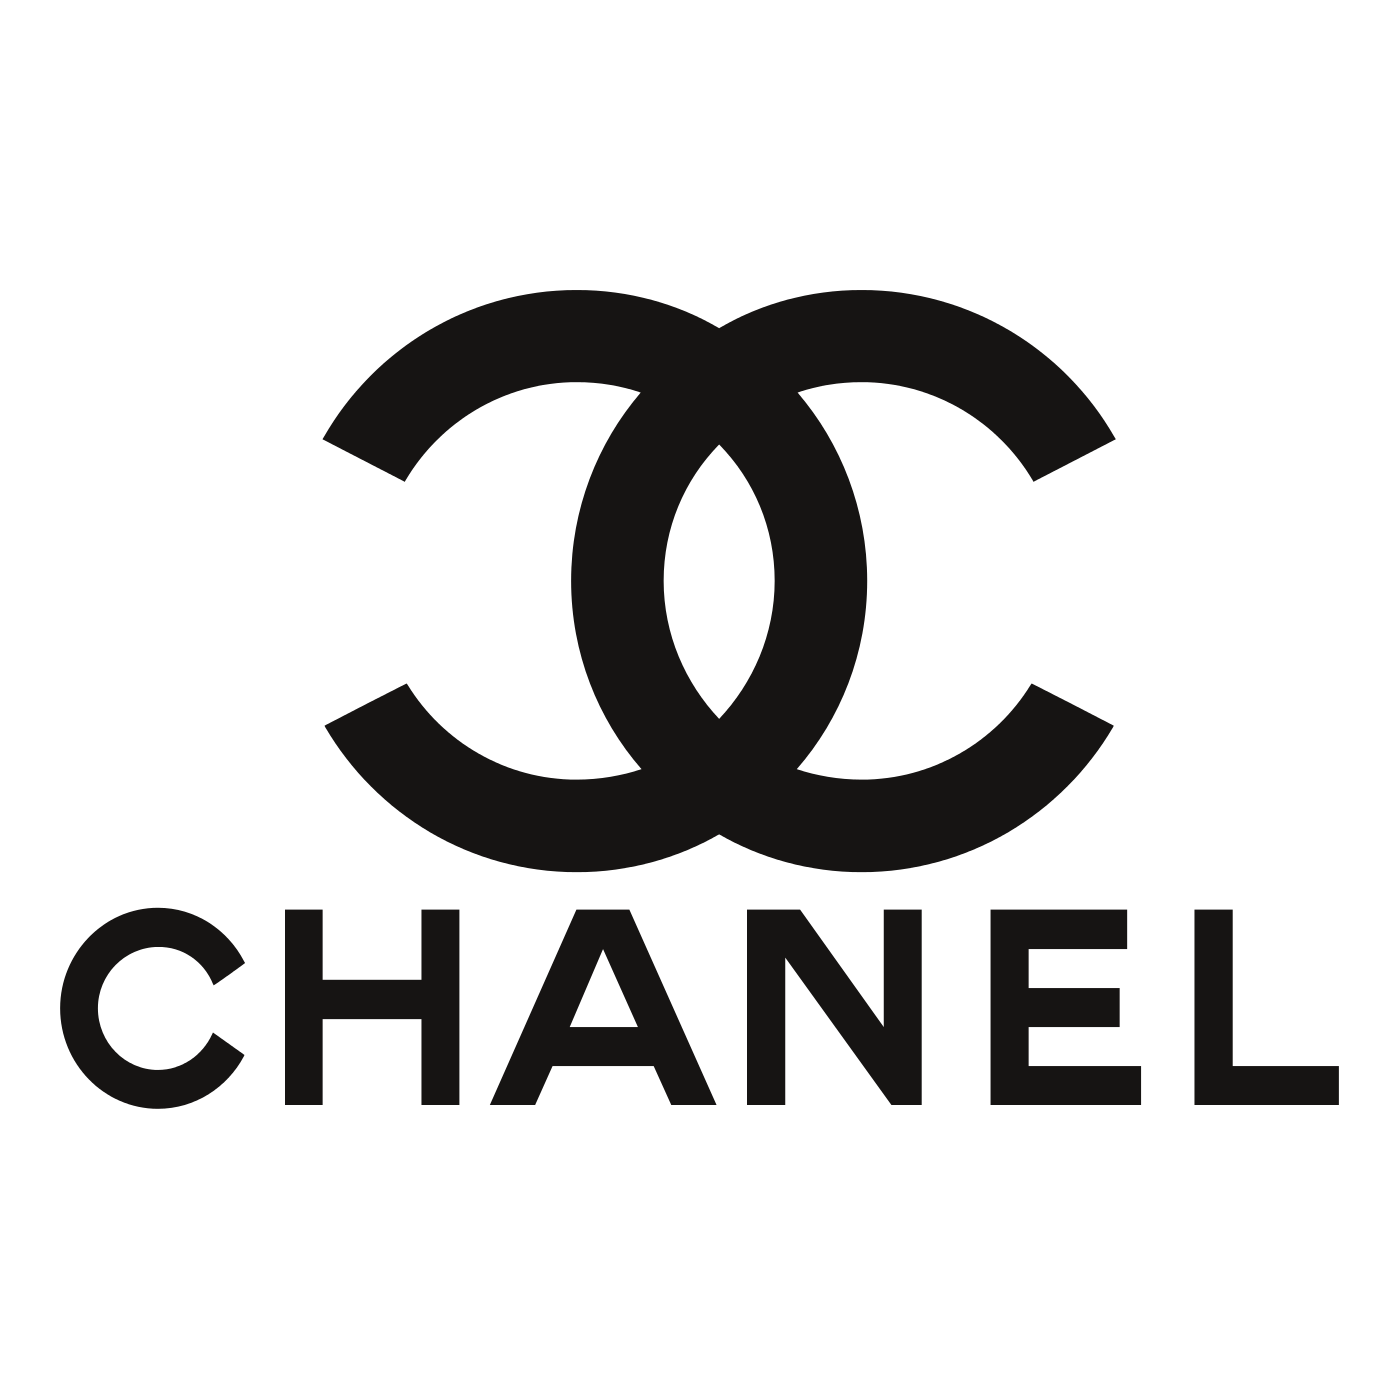 Logo Brand Fashion Chanel Iron-On Download HQ PNG PNG Image